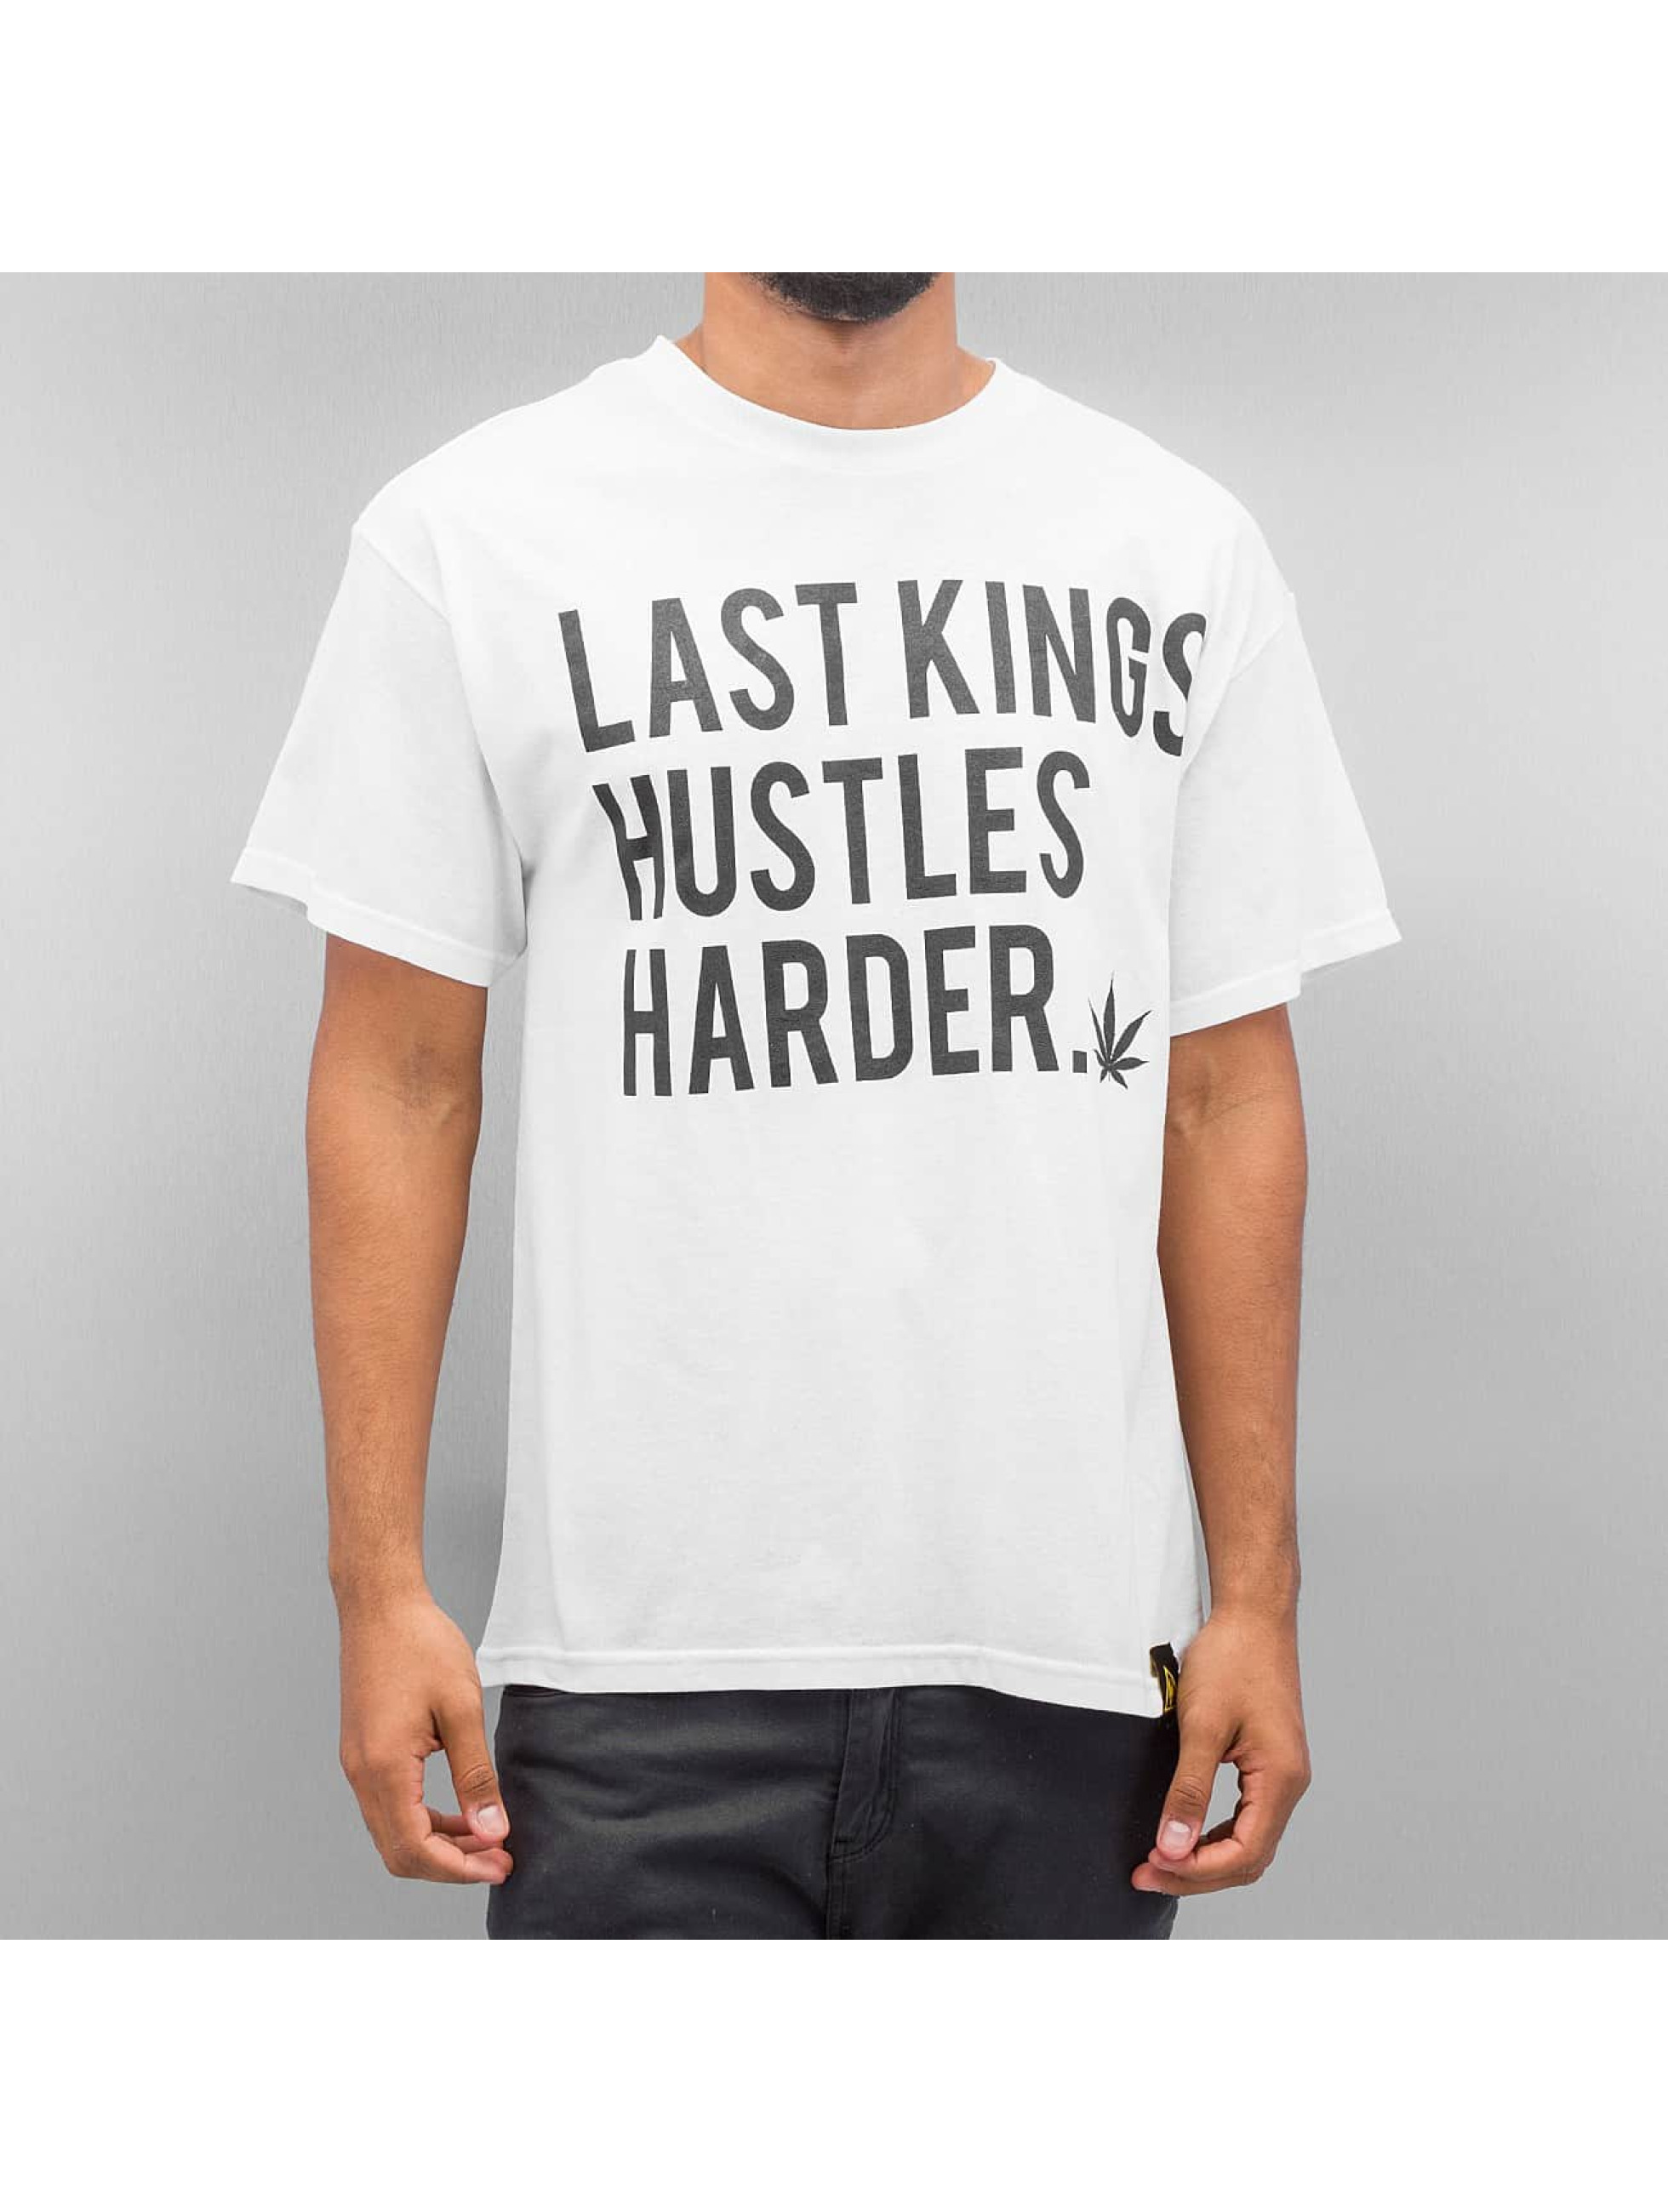 Last Kings T-Shirt Hustle Hard white